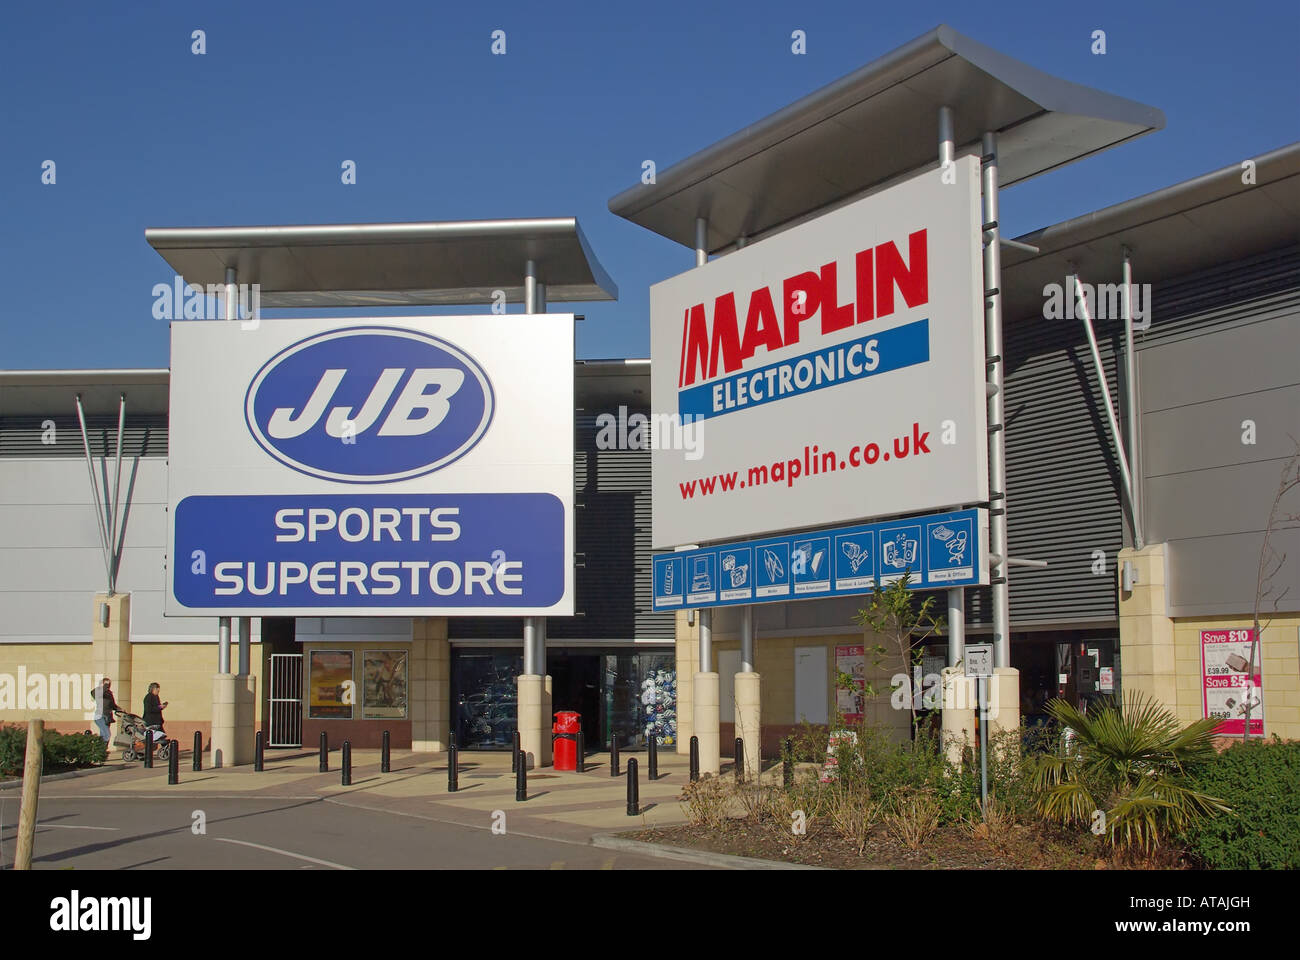 Lakeside out of town retail shopping complex JJB Sports and Maplin Electronic store sign and entrance canopy - Stock Image